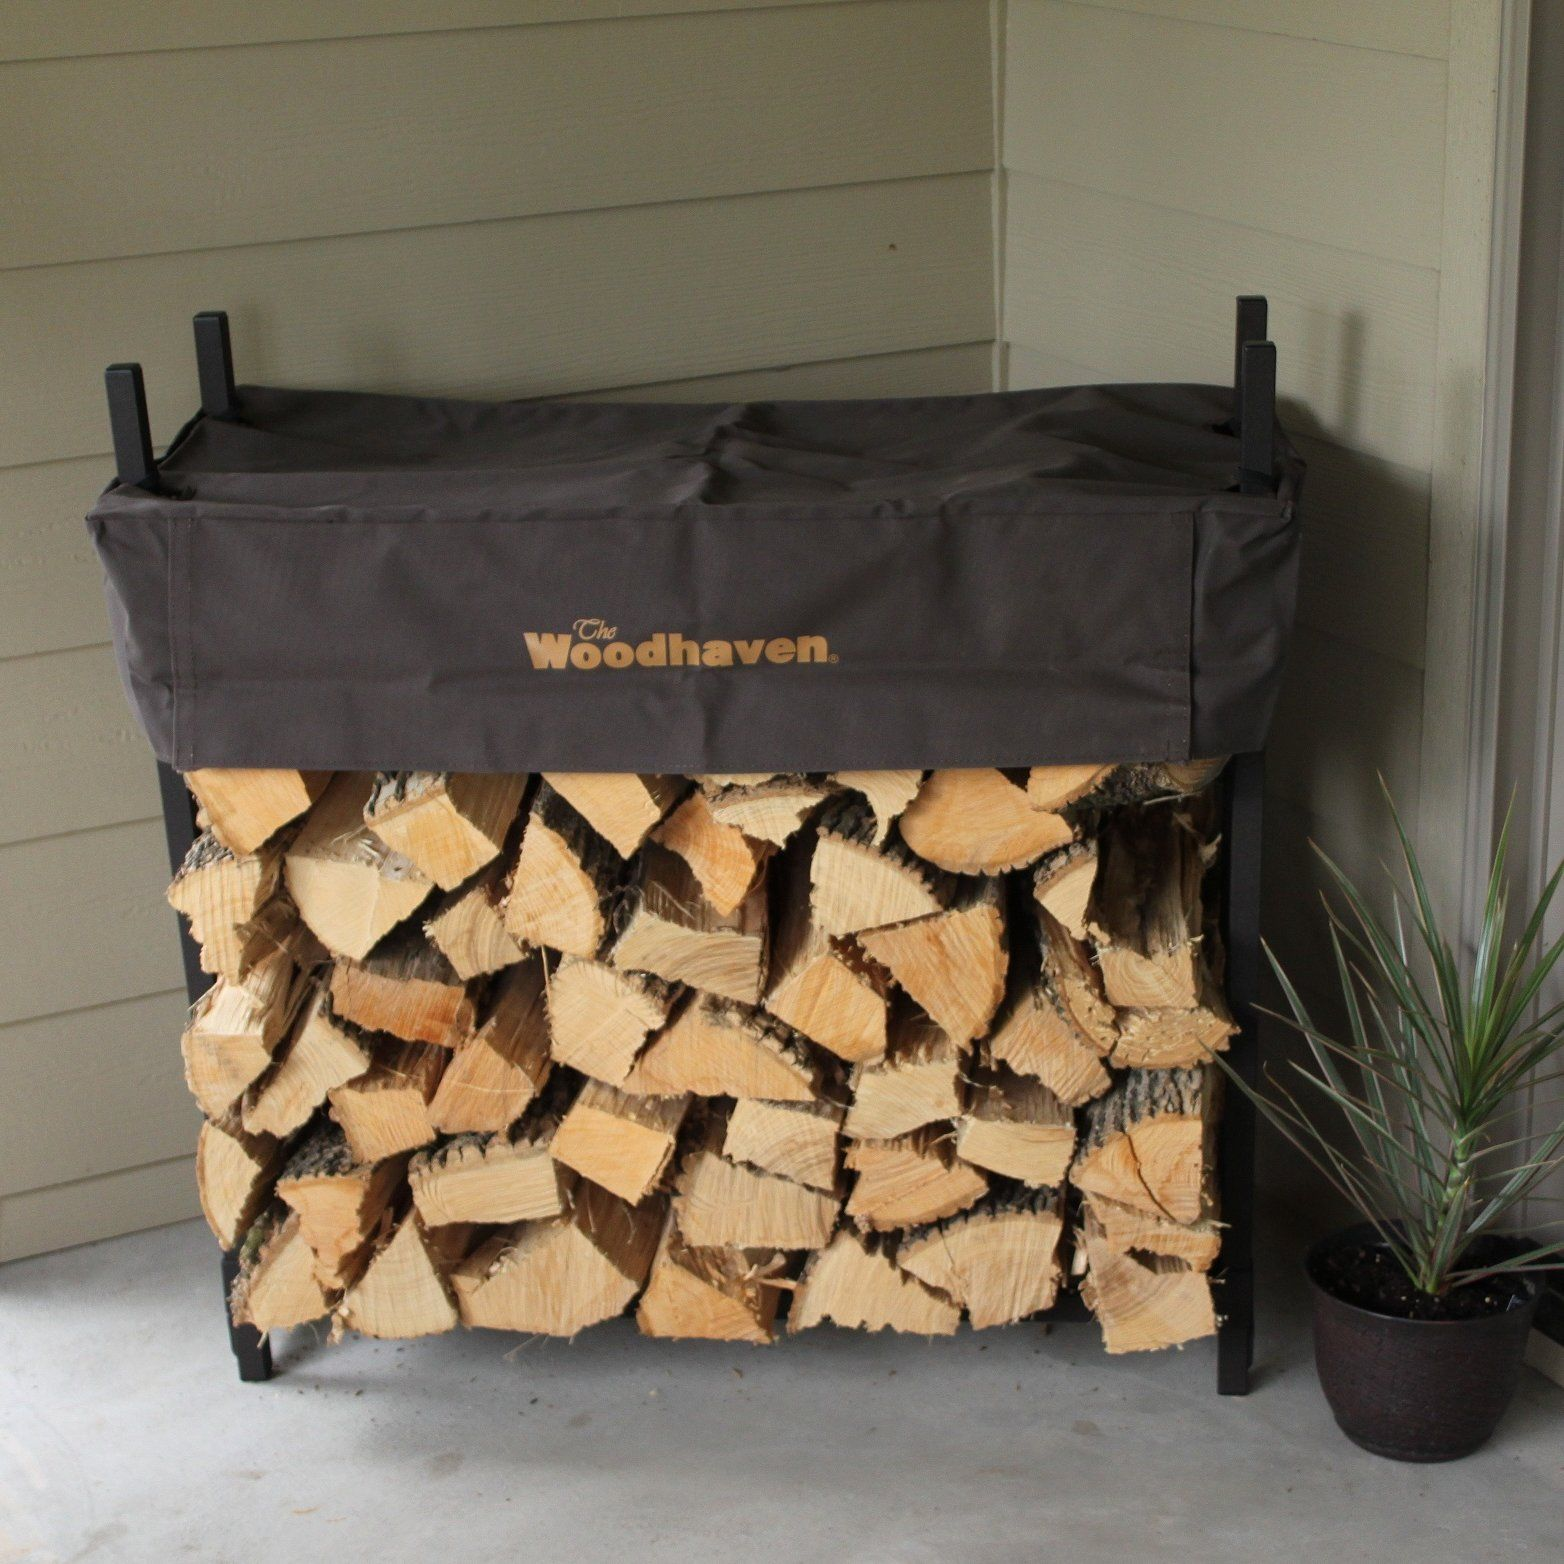 The Woodhaven 5ft Brown Firewood Rack With Cover | eBay